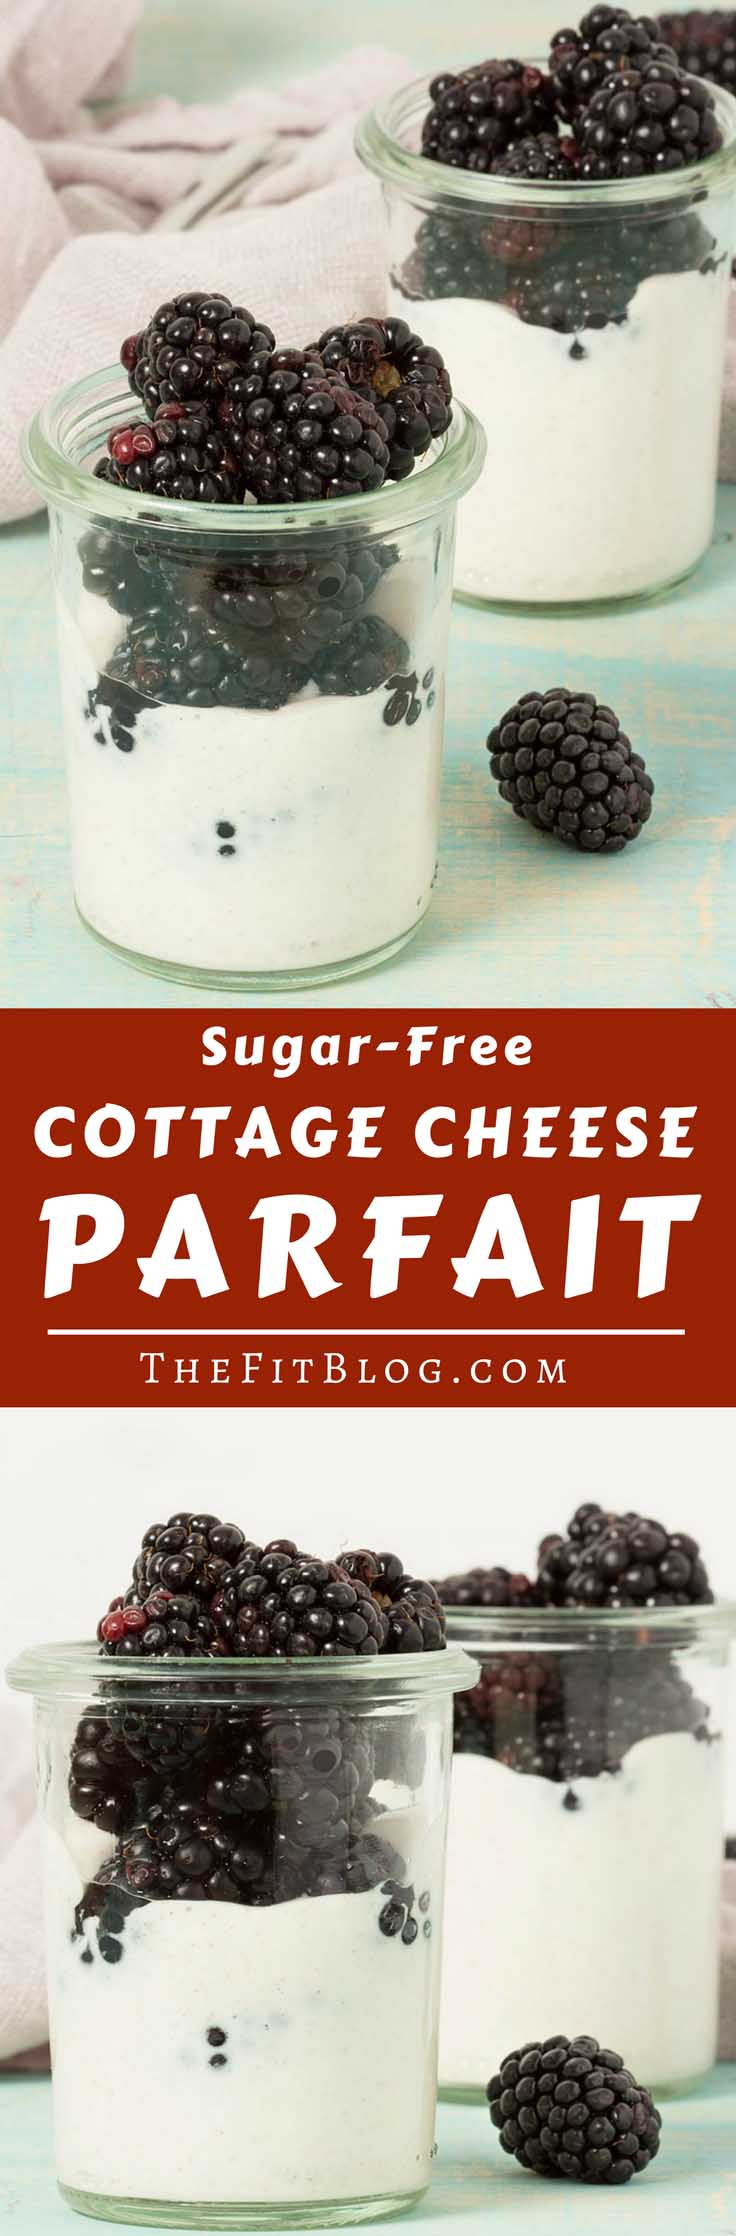 Berries and cottage cheese come together perfectly in this easy and healthy, no sugar added Cottage Cheese Parfait (high protein, diabetes friendly)